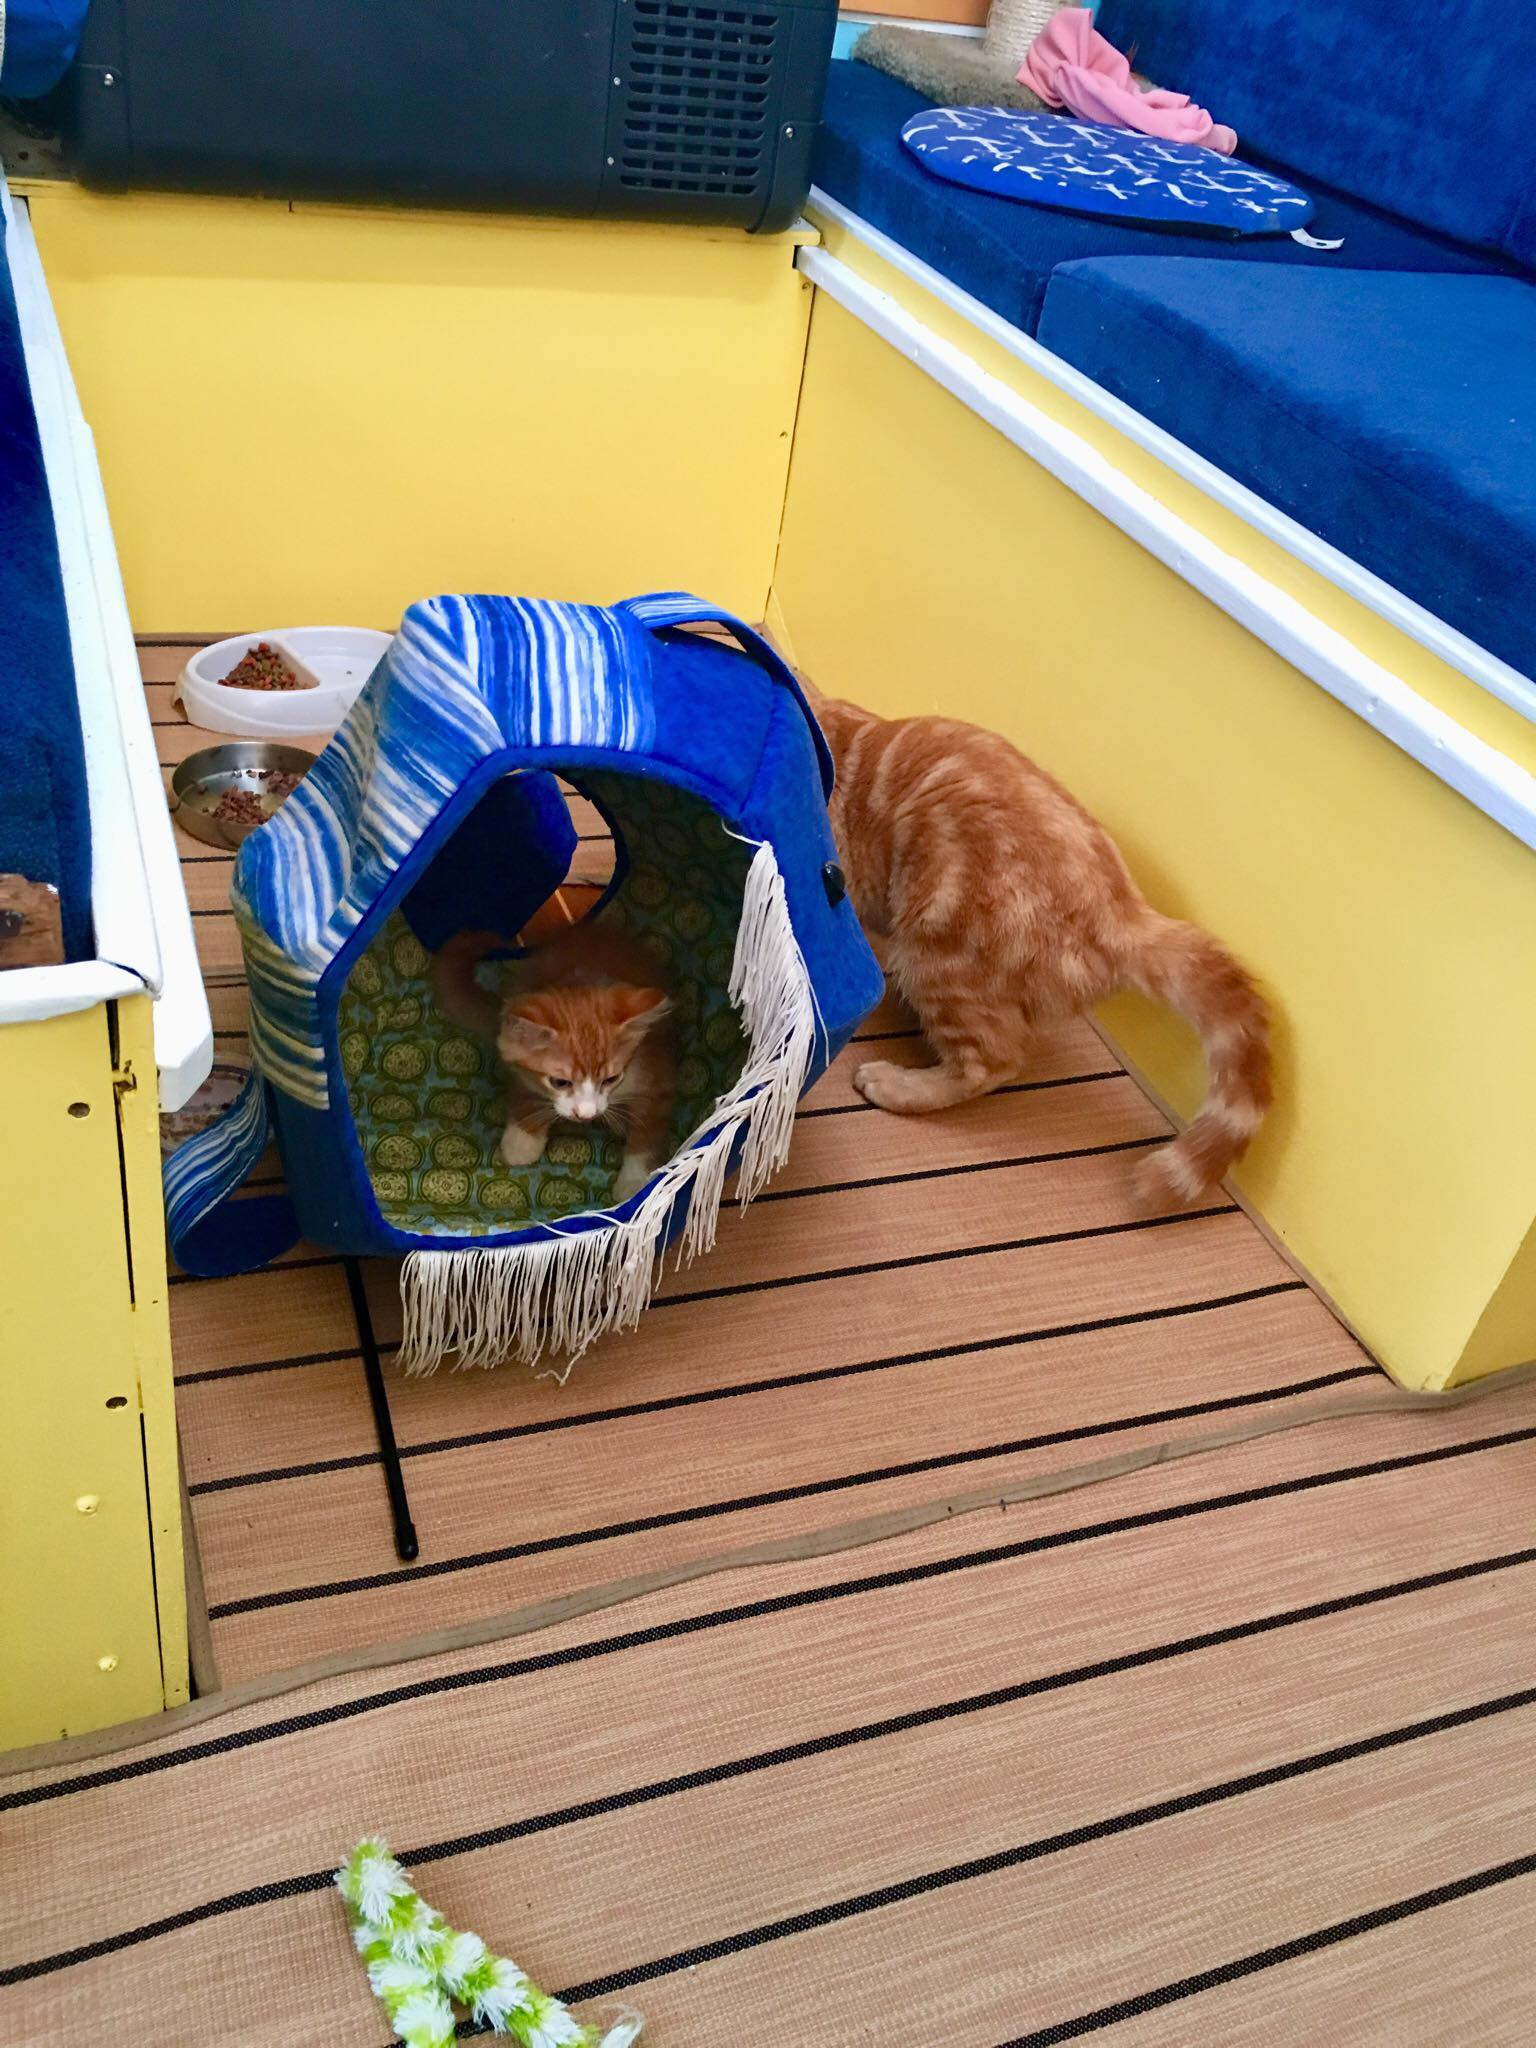 Sailing Life Day 64: Sunday Fun Day with Two Cats Sailing here in Luperon, Dominican Republic🤣😍